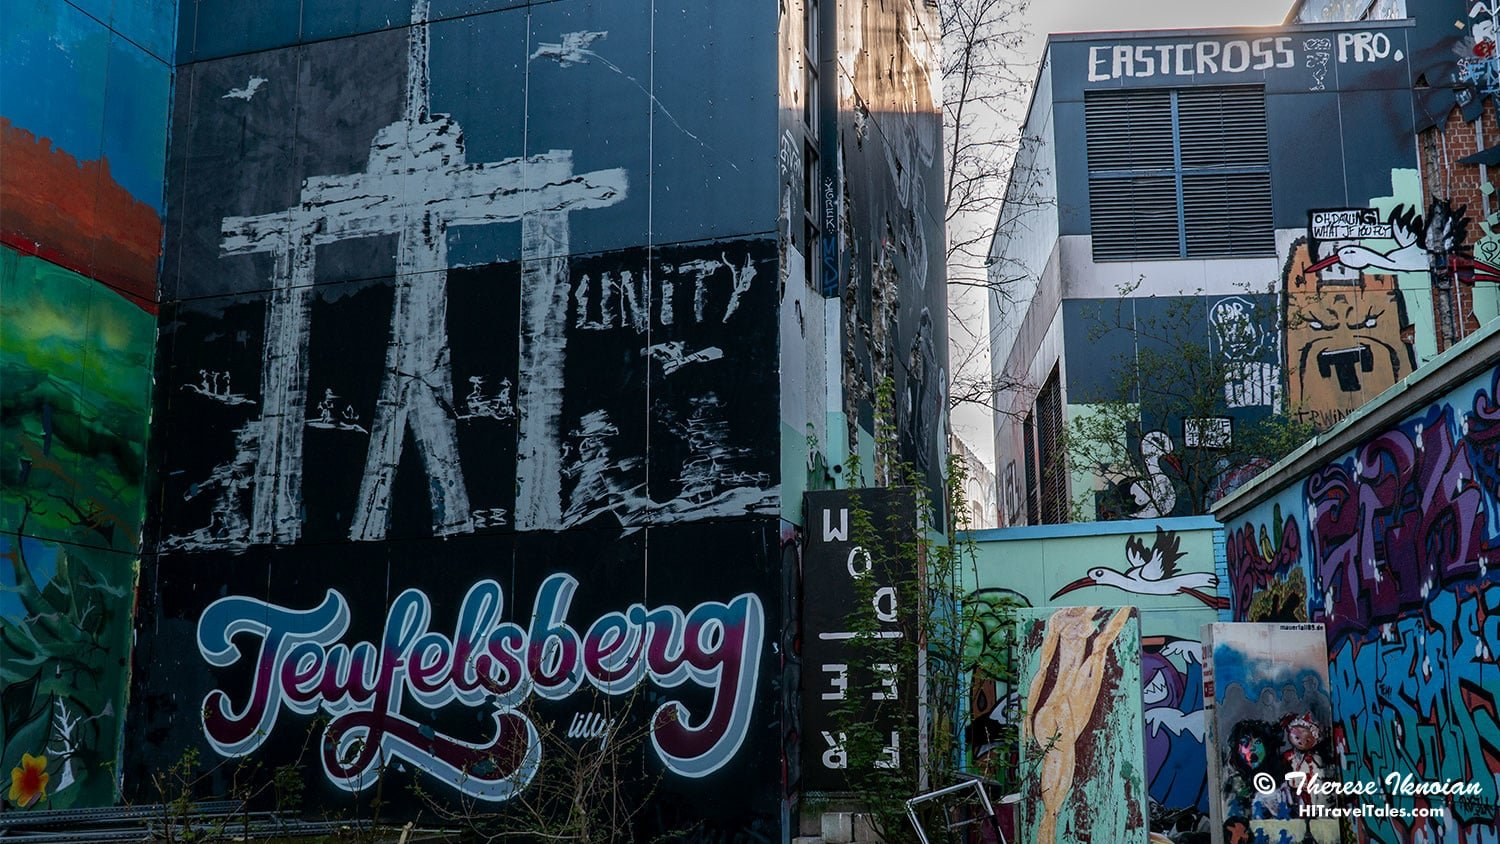 Teufelsberg painted on a wall behind the complex.